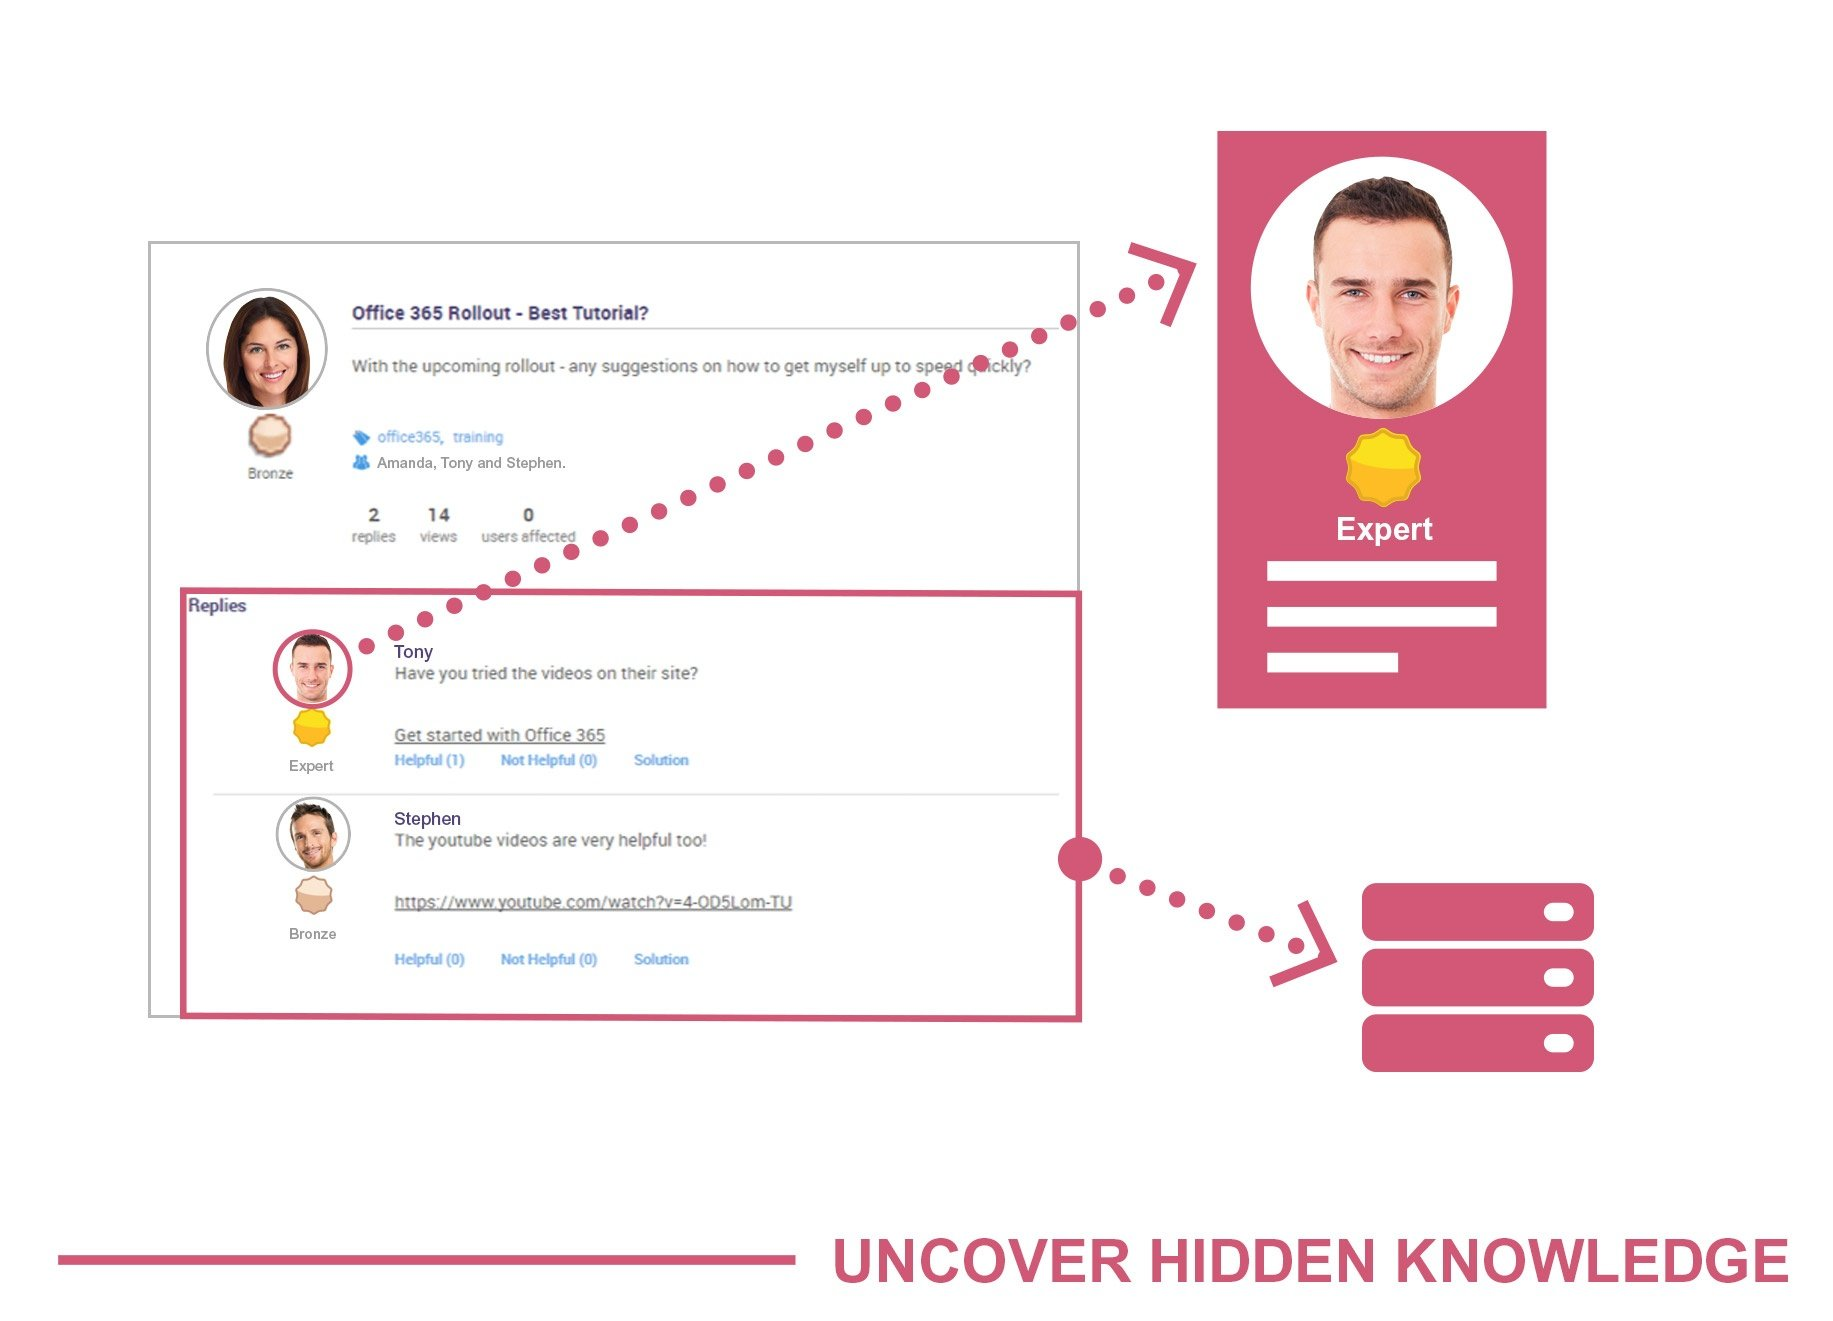 Uncover hidden knowledge with the assyst Knowledge Candidate Automation bot